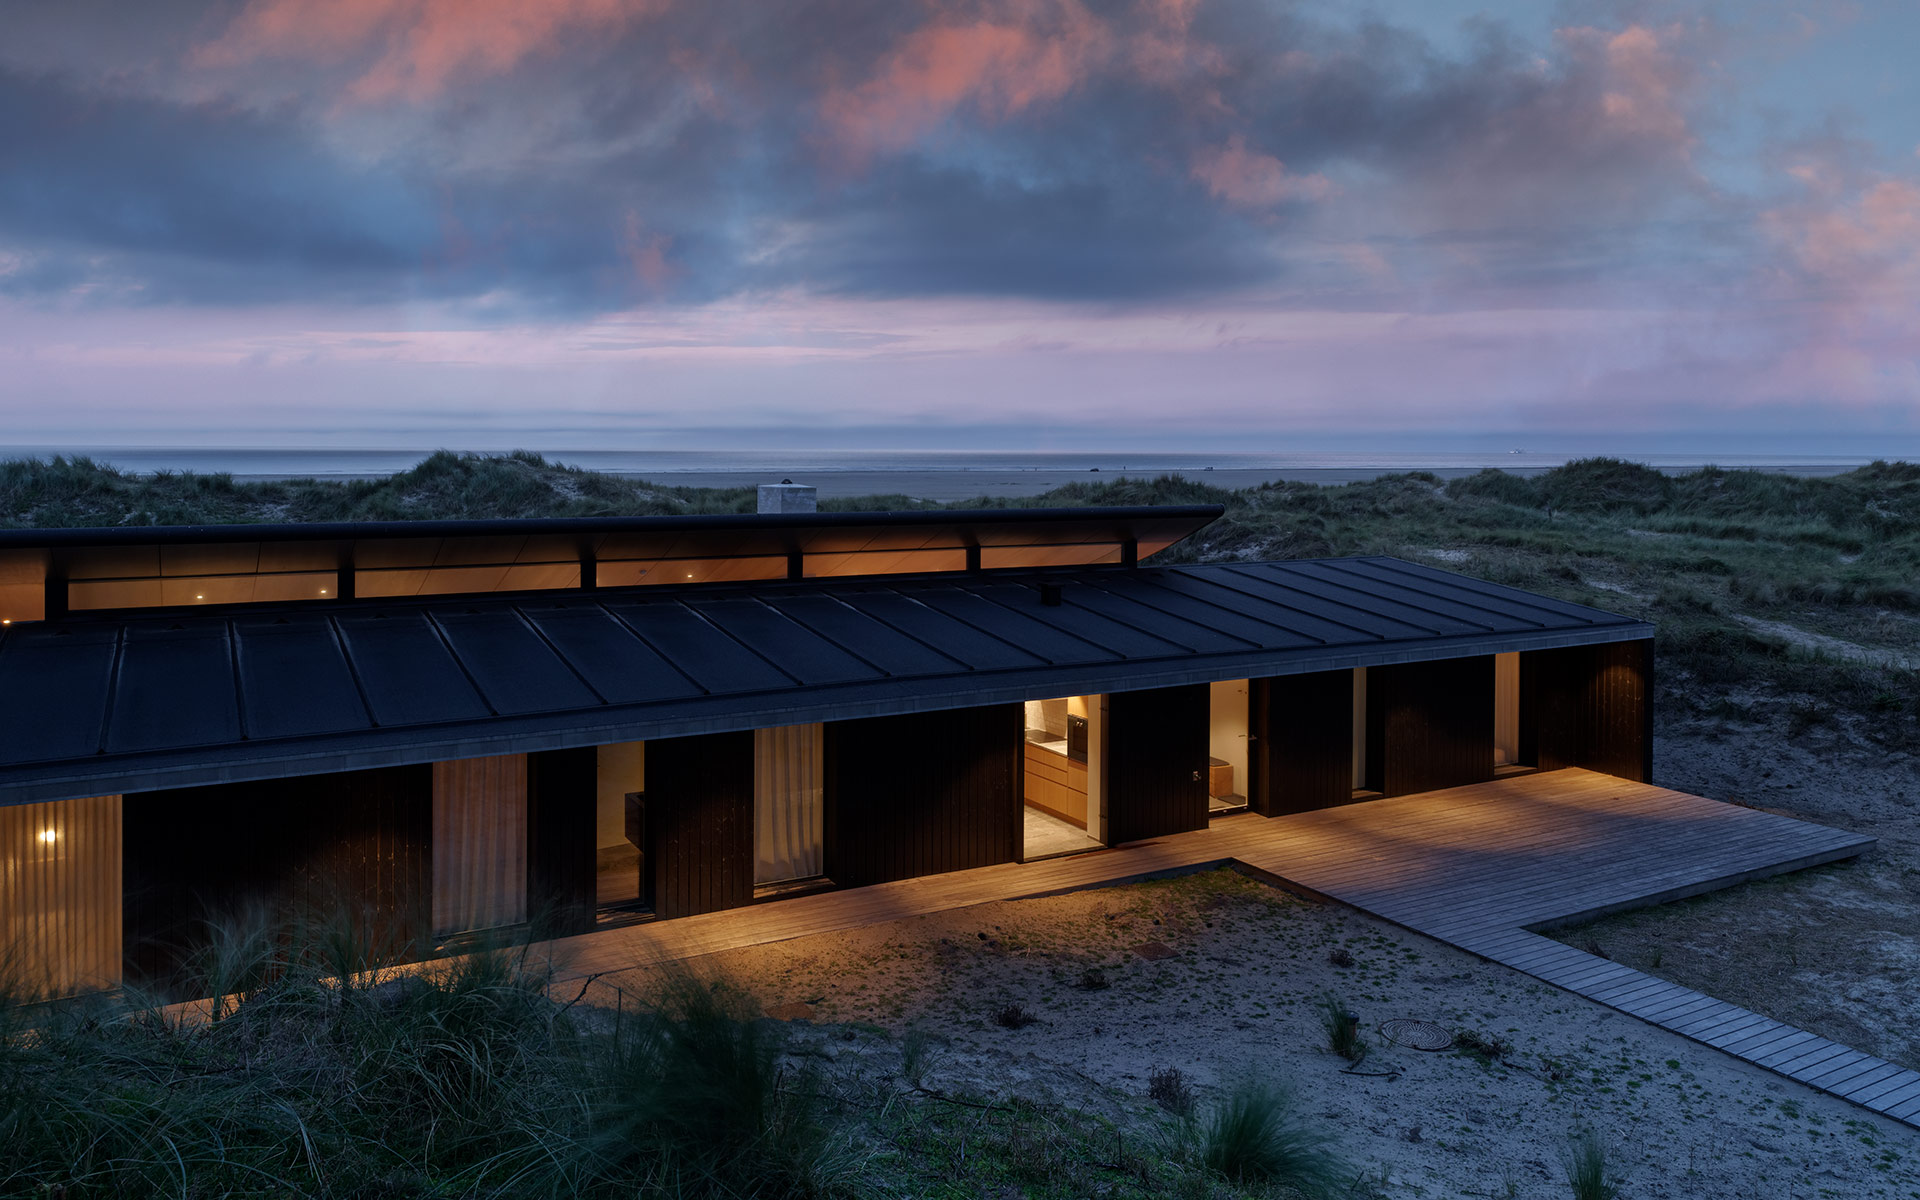 Sunset view over Architectural single storey summer house on the isle of Fano, denmark